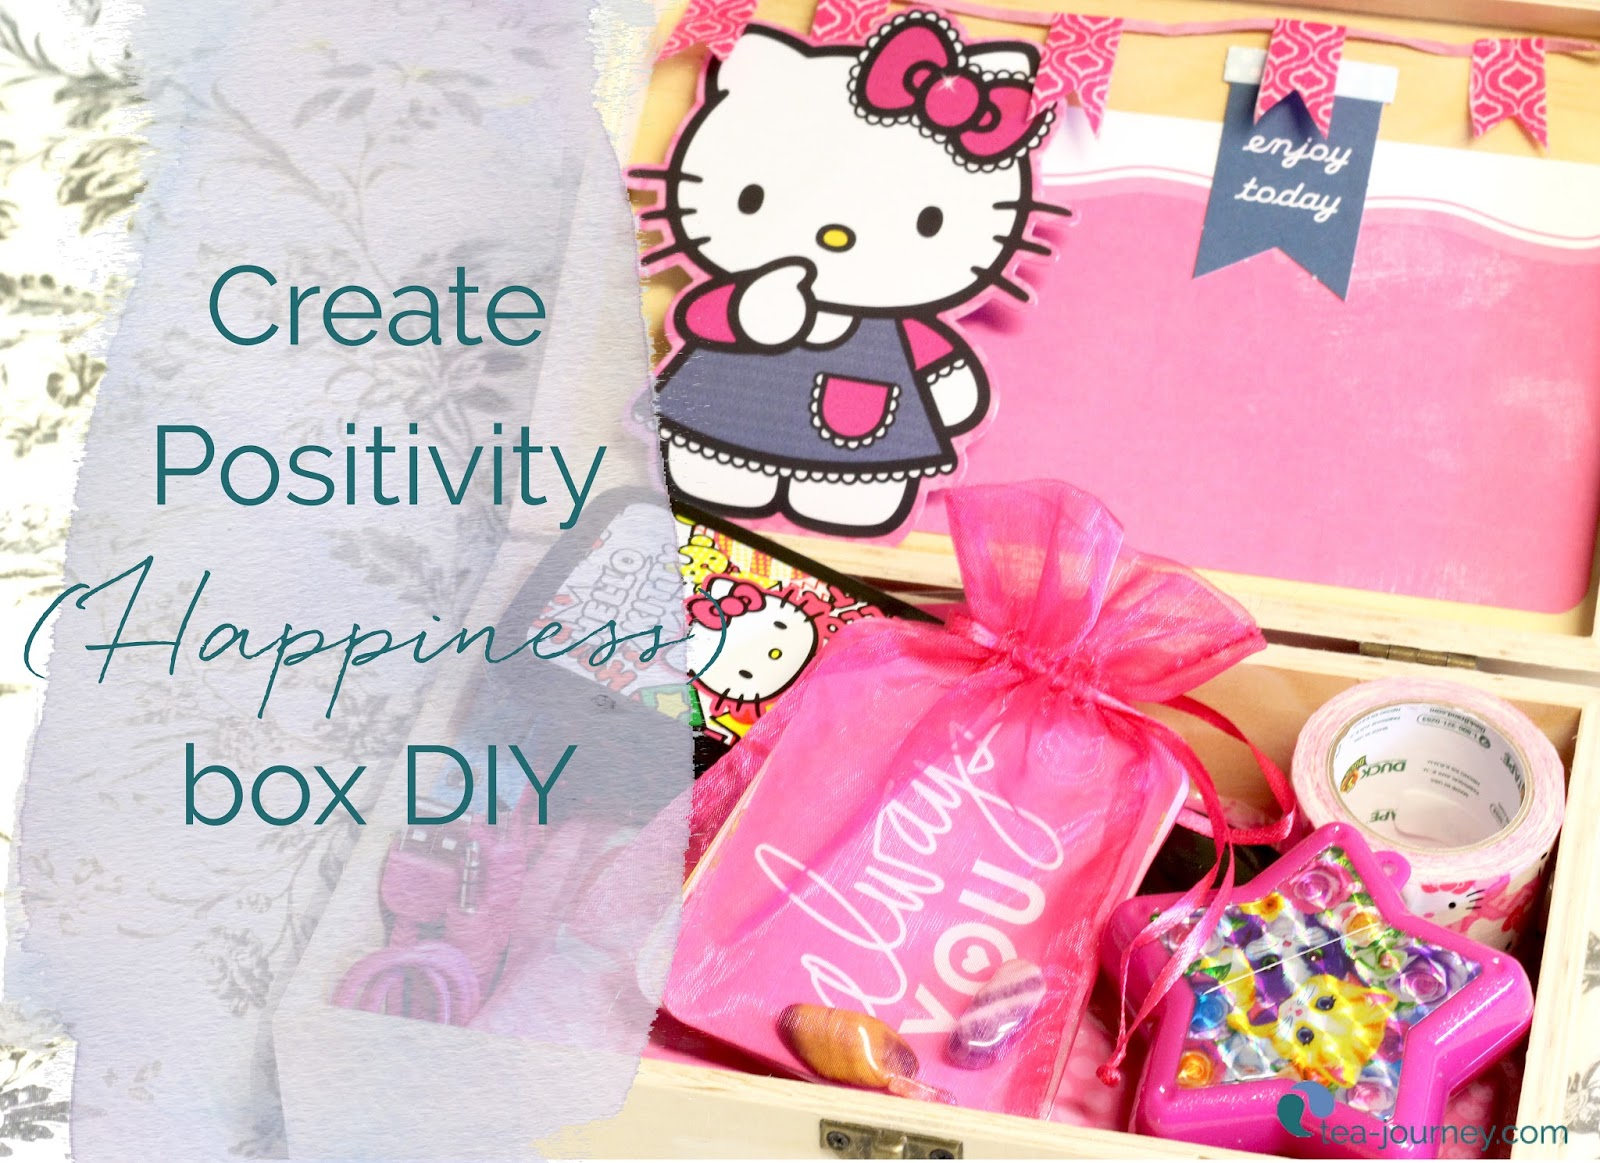 Give the gift of love and happiness with this positivity box DIY. Gather up supplies for an easy gift you can even put together last minute (we won't tell).